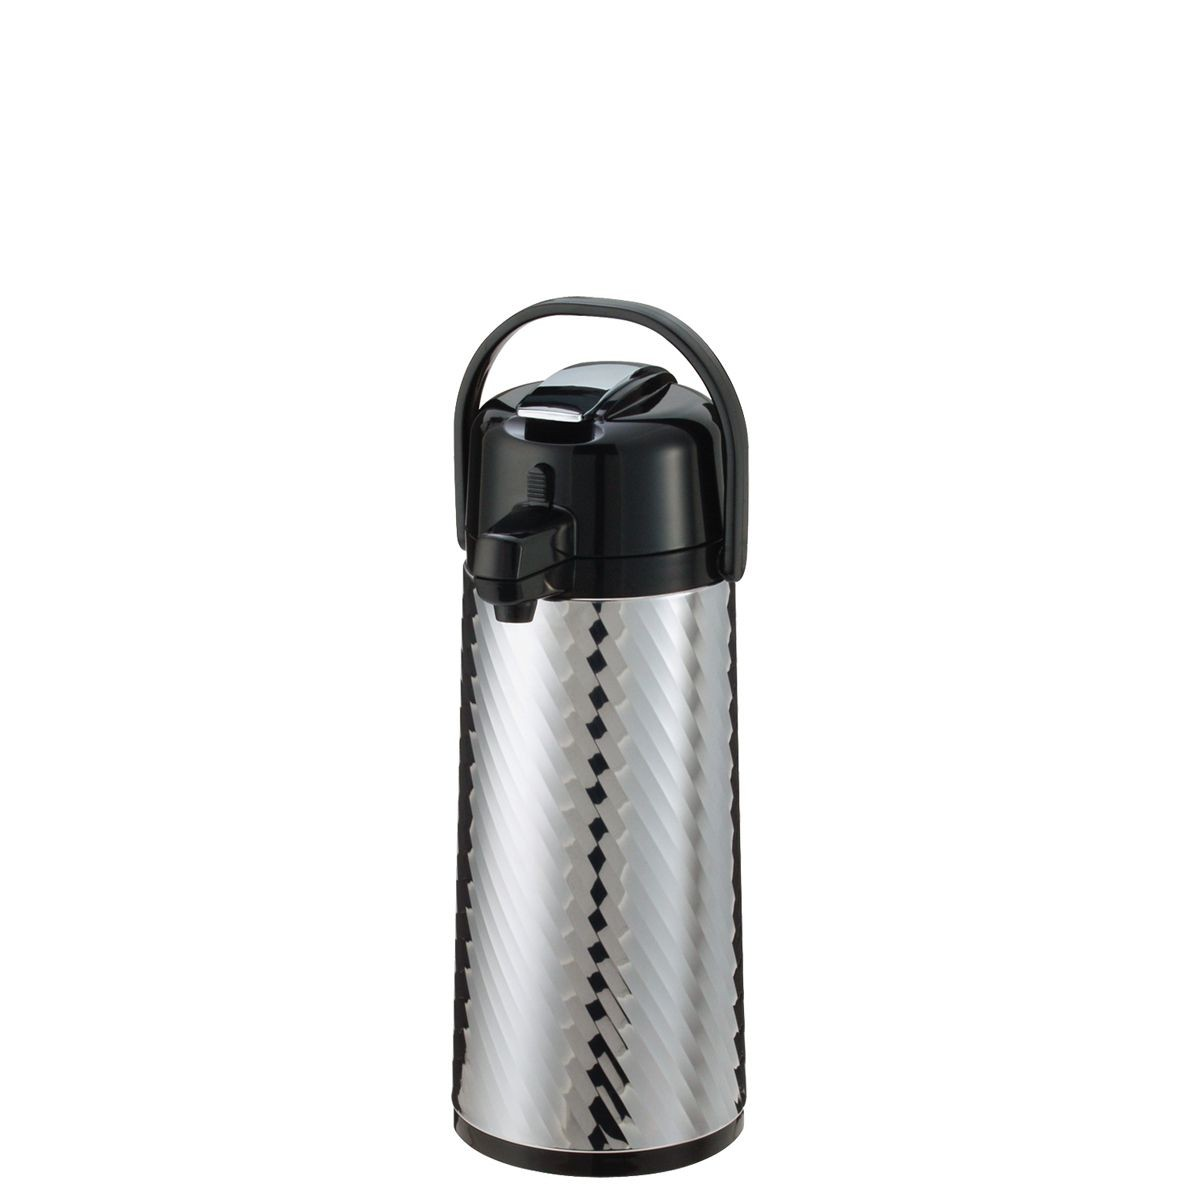 Service Ideas ECAJLS22S Eco Air Jewel Shell Insulated Stainless-Lined Airpot, 2.4 Liter